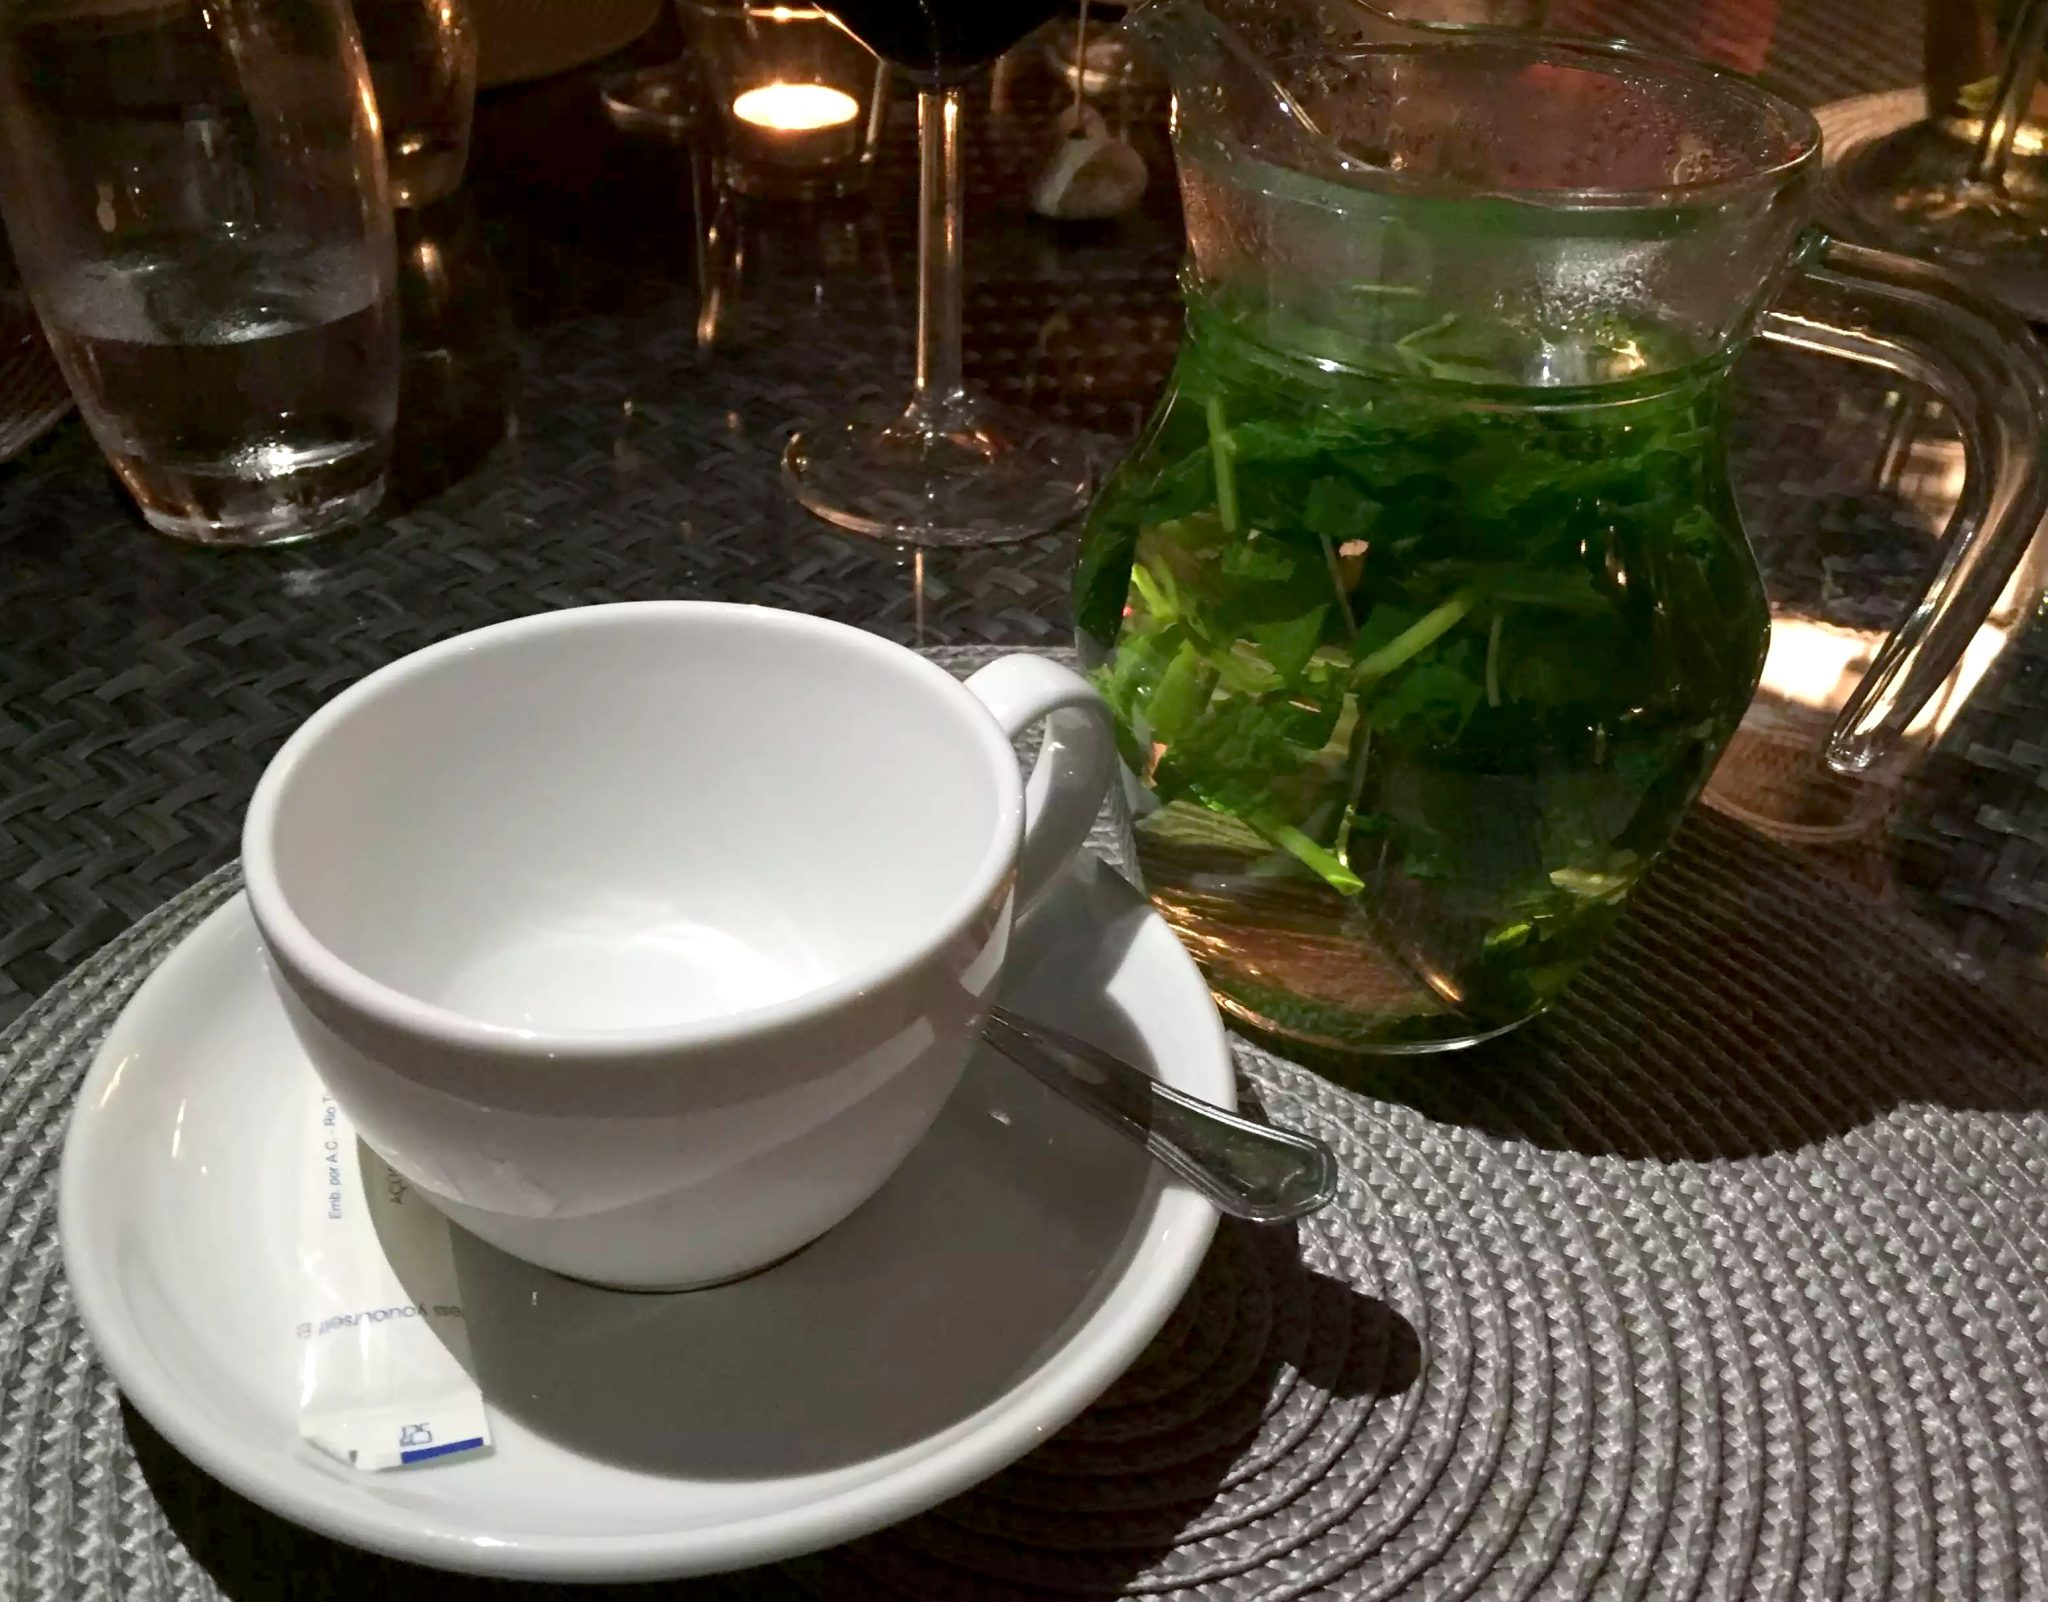 A Quinta Restaurant Almancil Algarve Portugal fresh Mint Tea